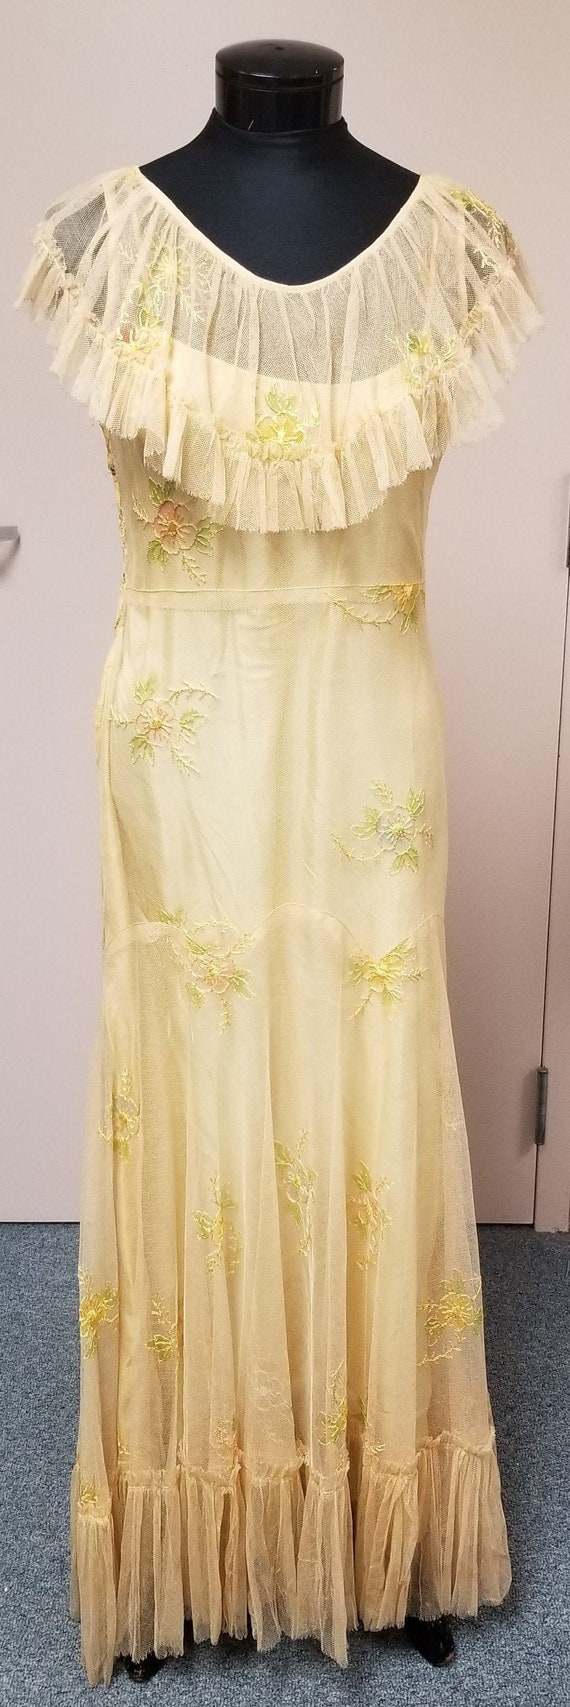 Antique 1930's Floral Embroidered Net Slip Dress